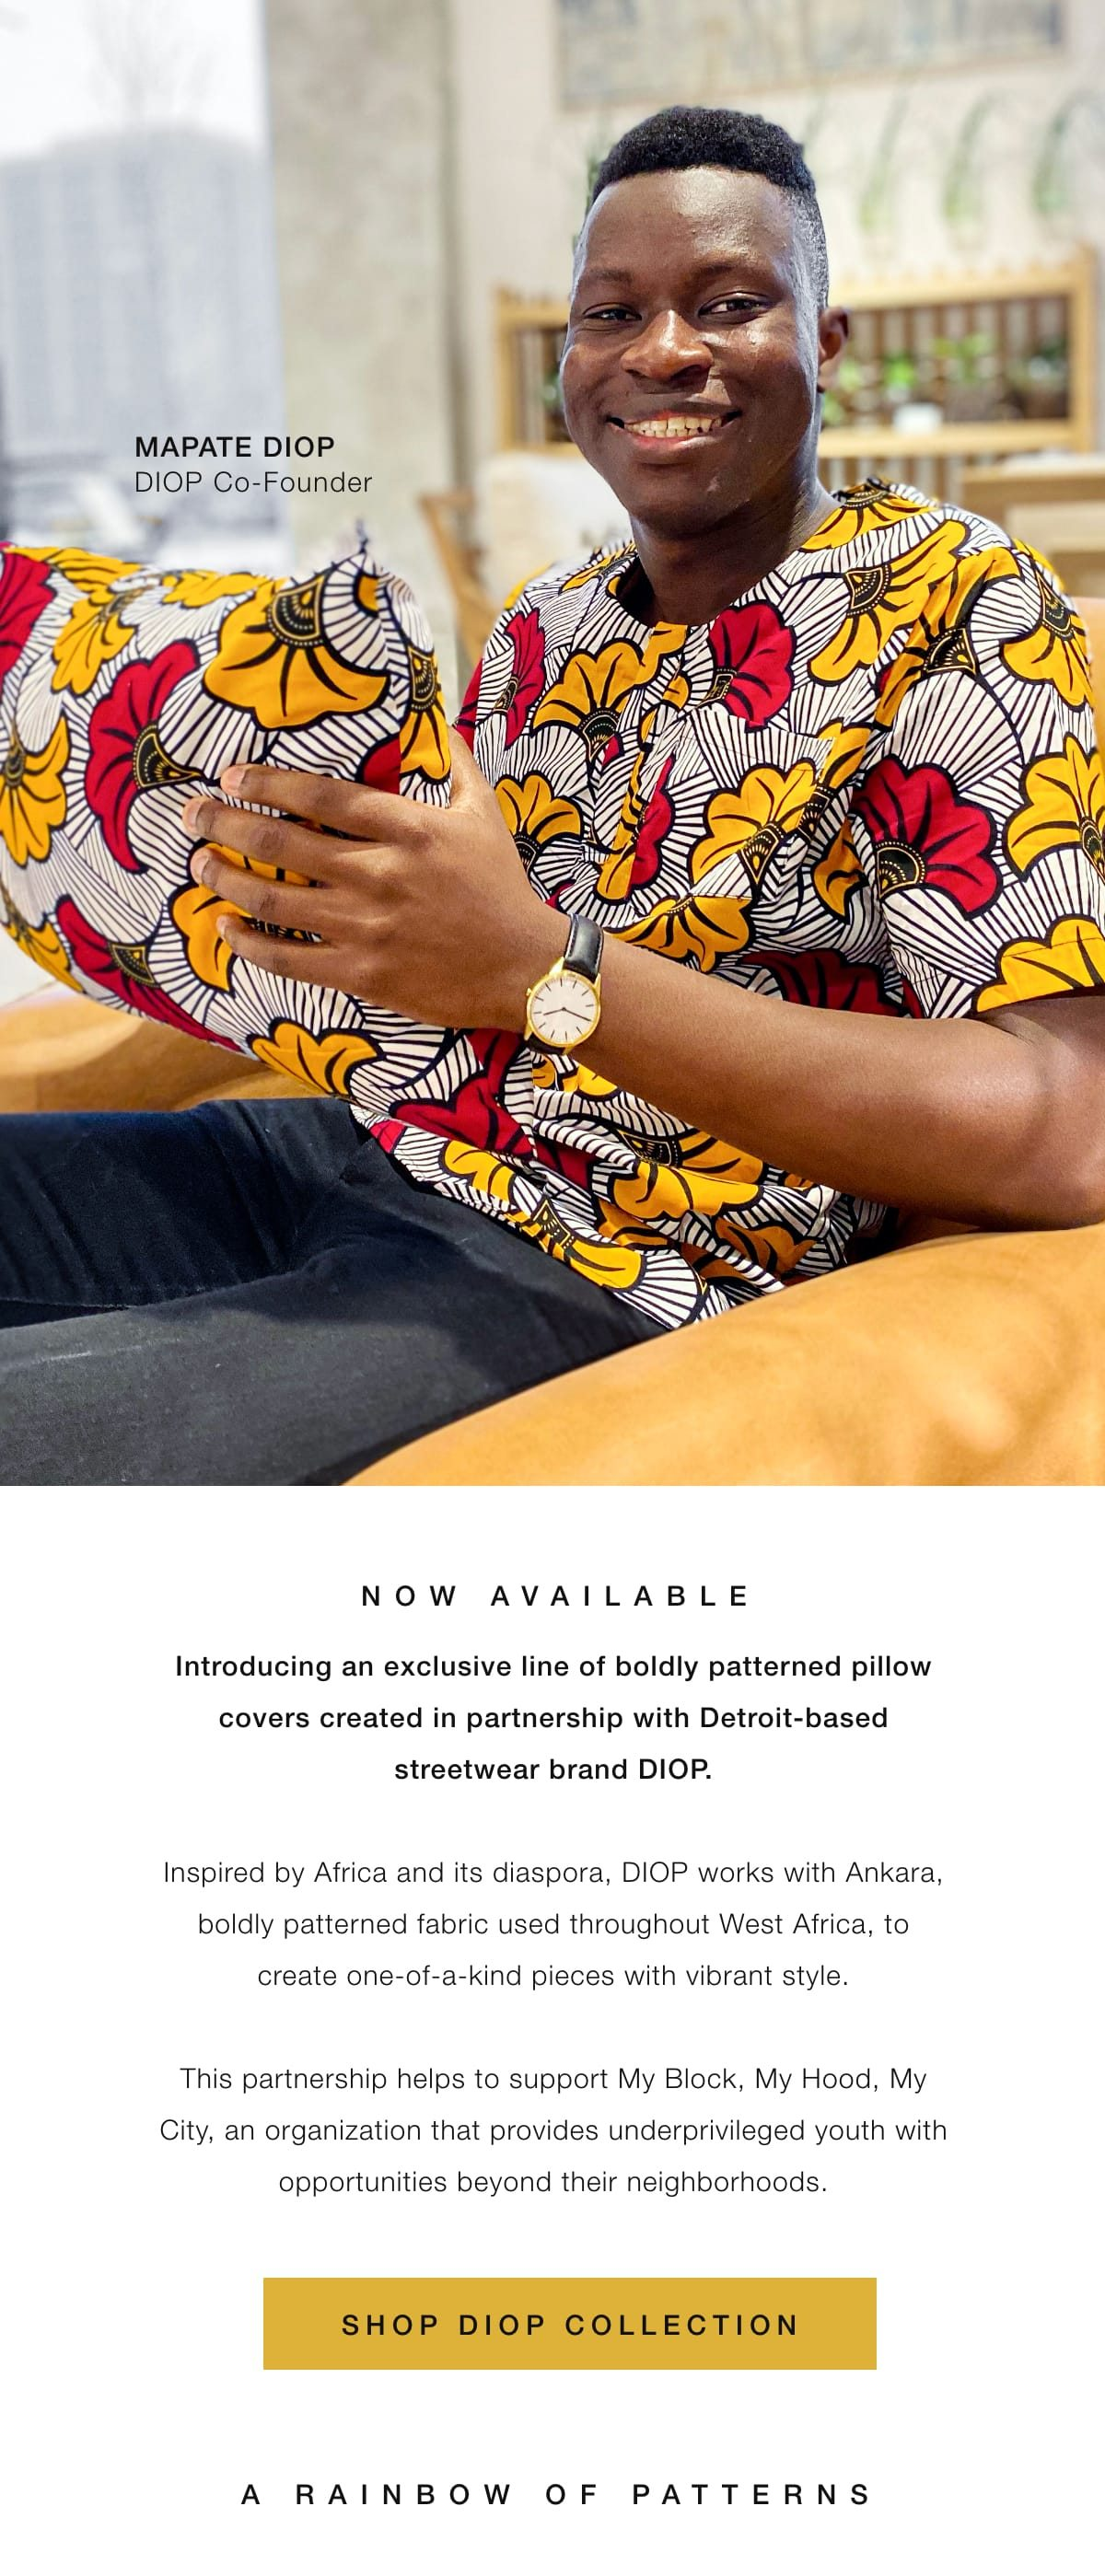 Shop the Diop Collection